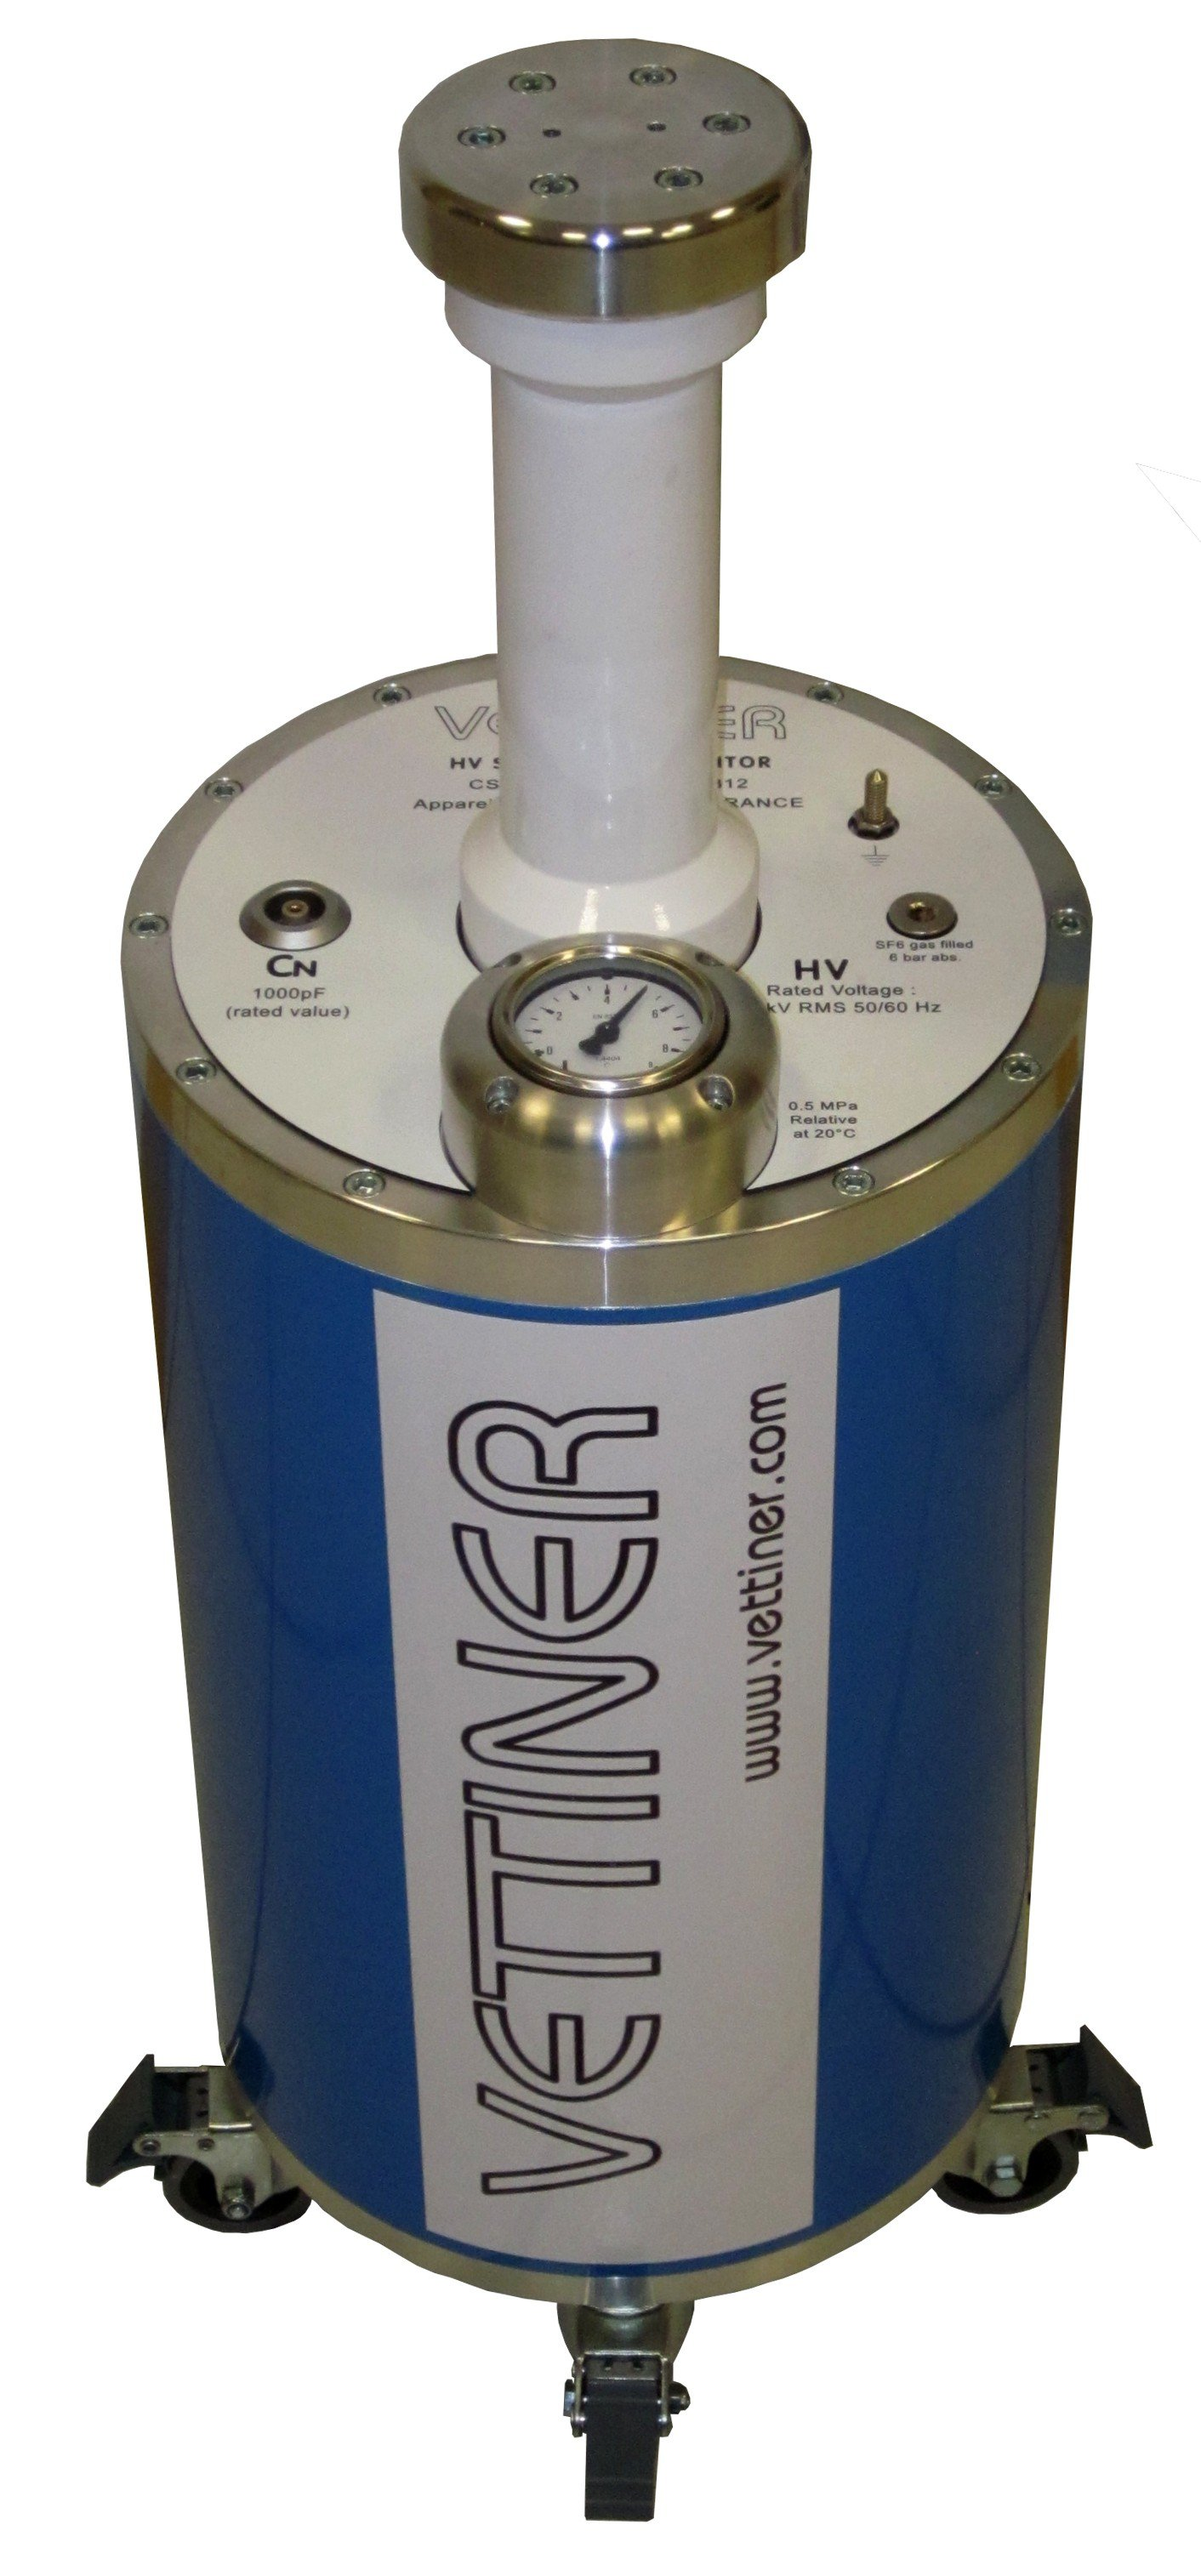 HV 0.5 kV to 100 kV high capacitance standard capacitors